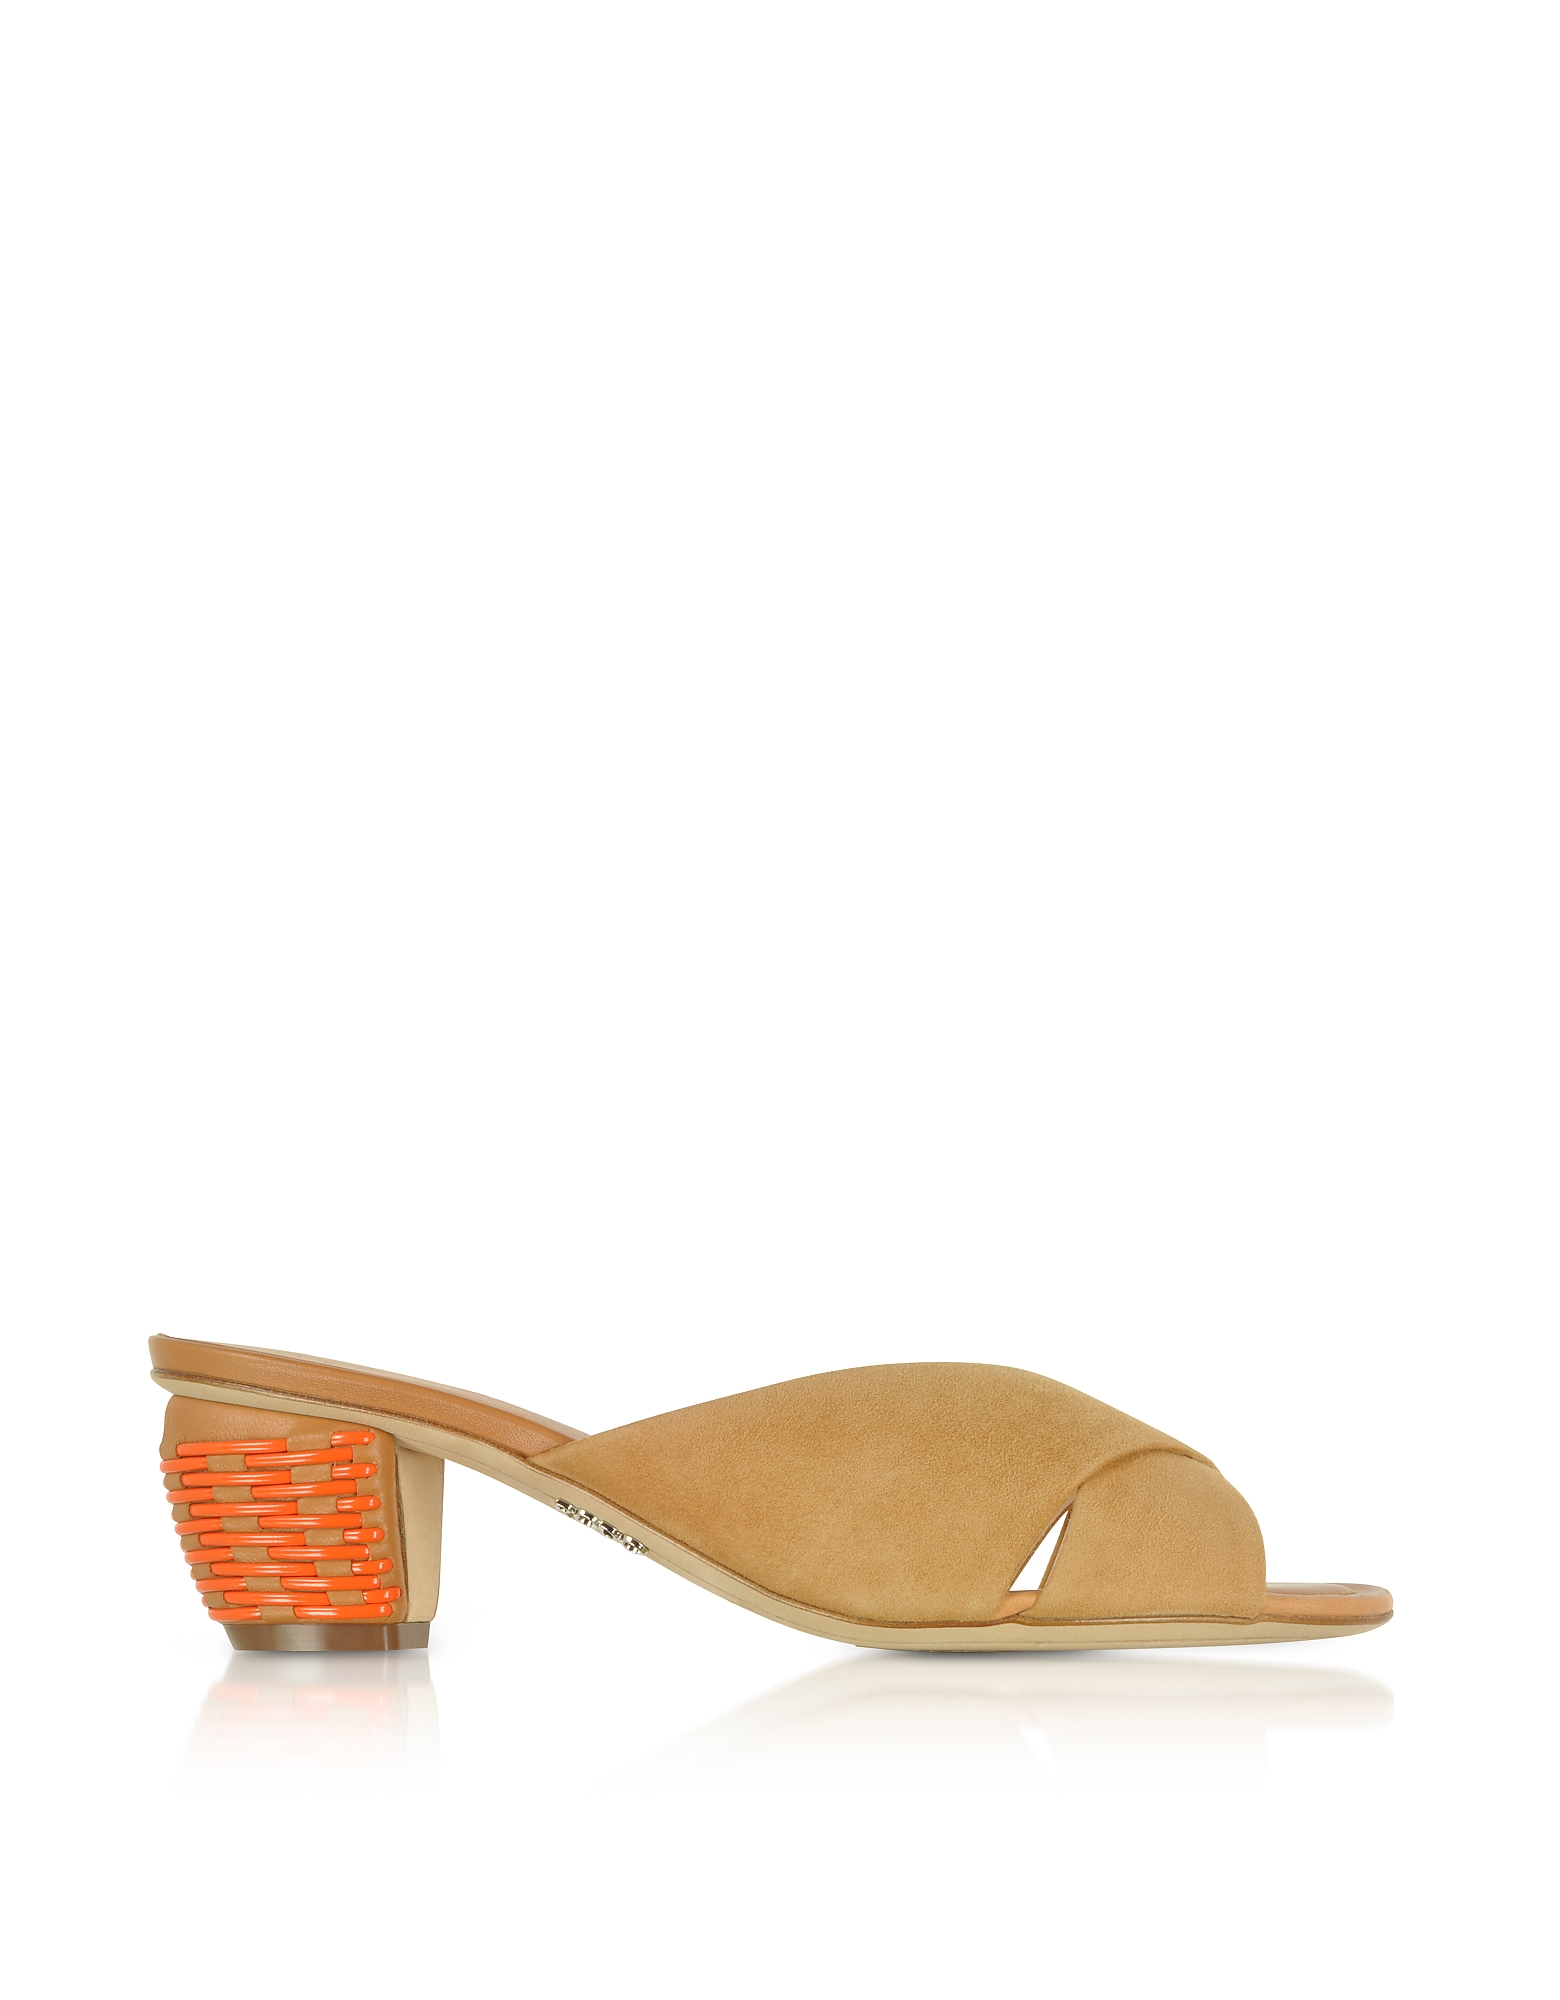 Rodo Shoes, Mustard Suede 5MM Criss-Cross Slide Sandals